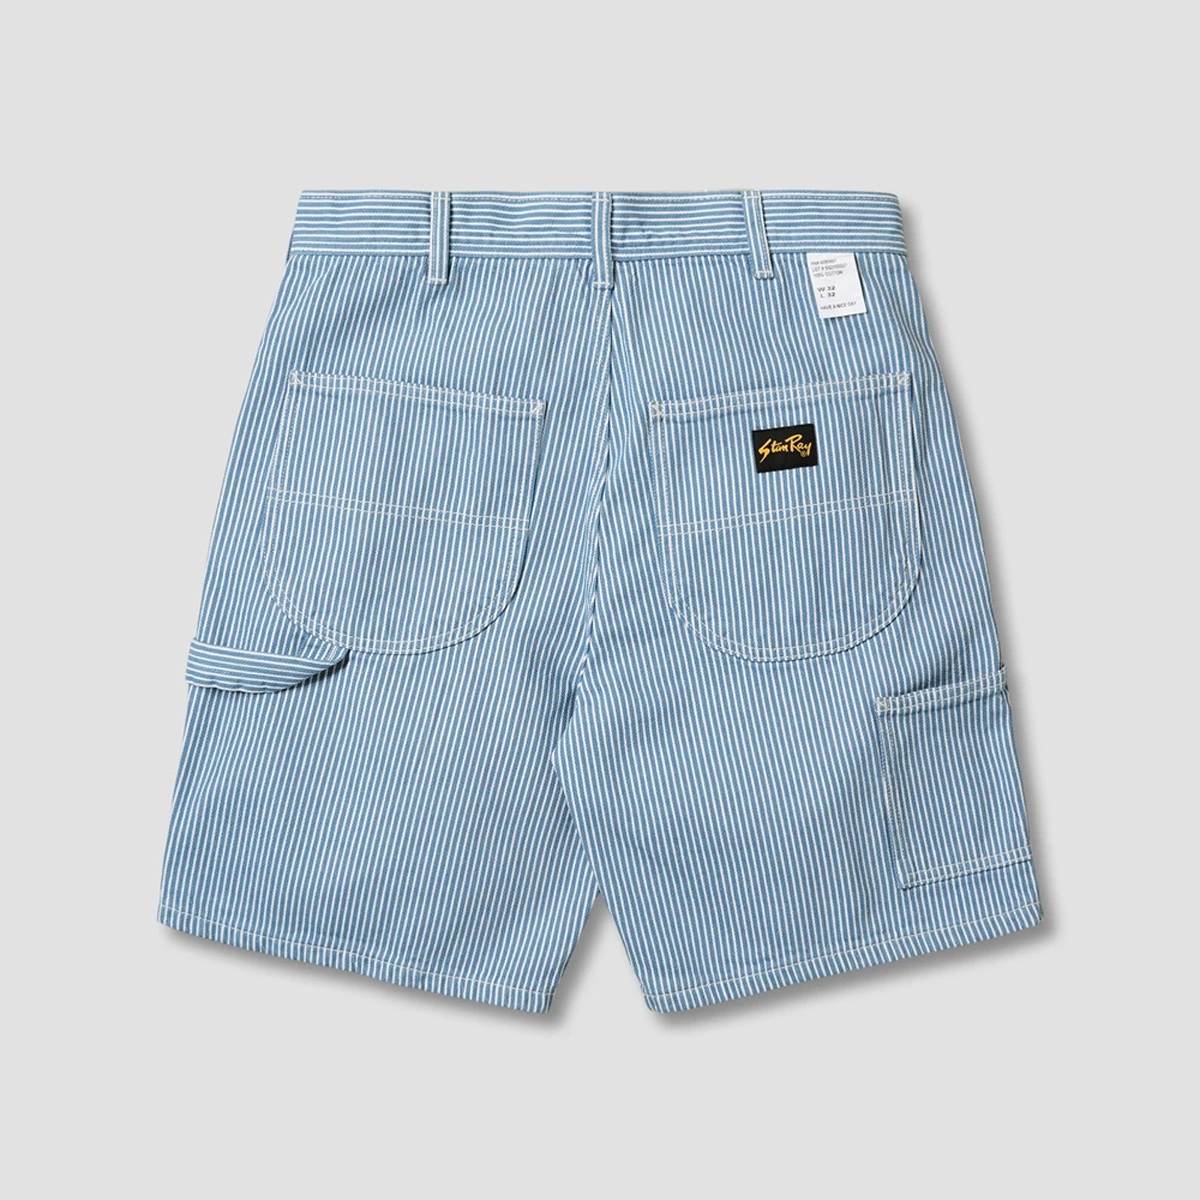 Stan Ray Painter Shorts- Washed Hickory